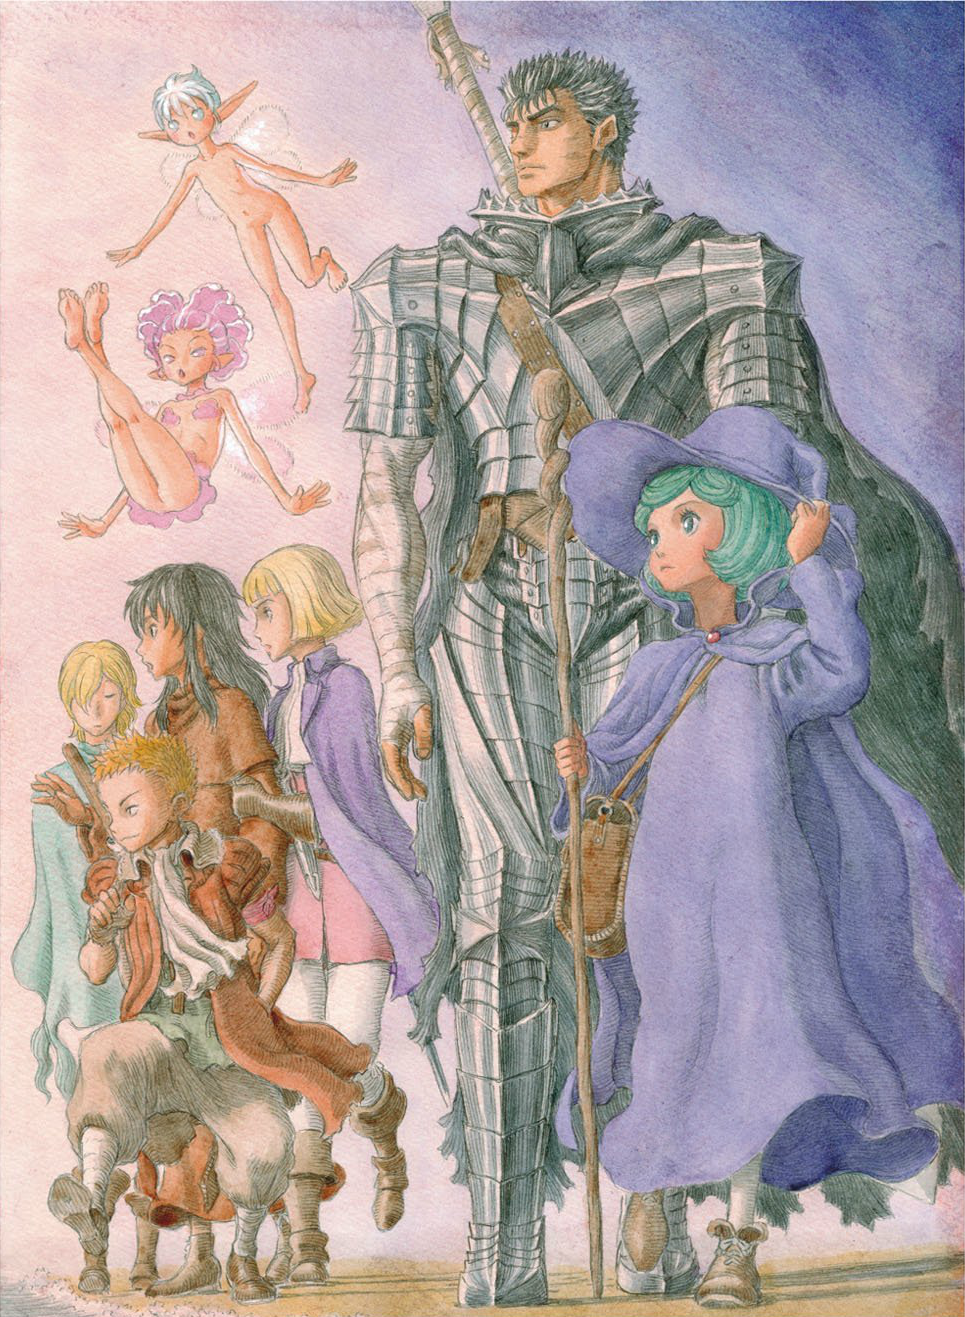 https://vignette.wikia.nocookie.net/berserk/images/a/ae/Guts%27_Traveling_Party_3.png/revision/latest?cb=20170530212055